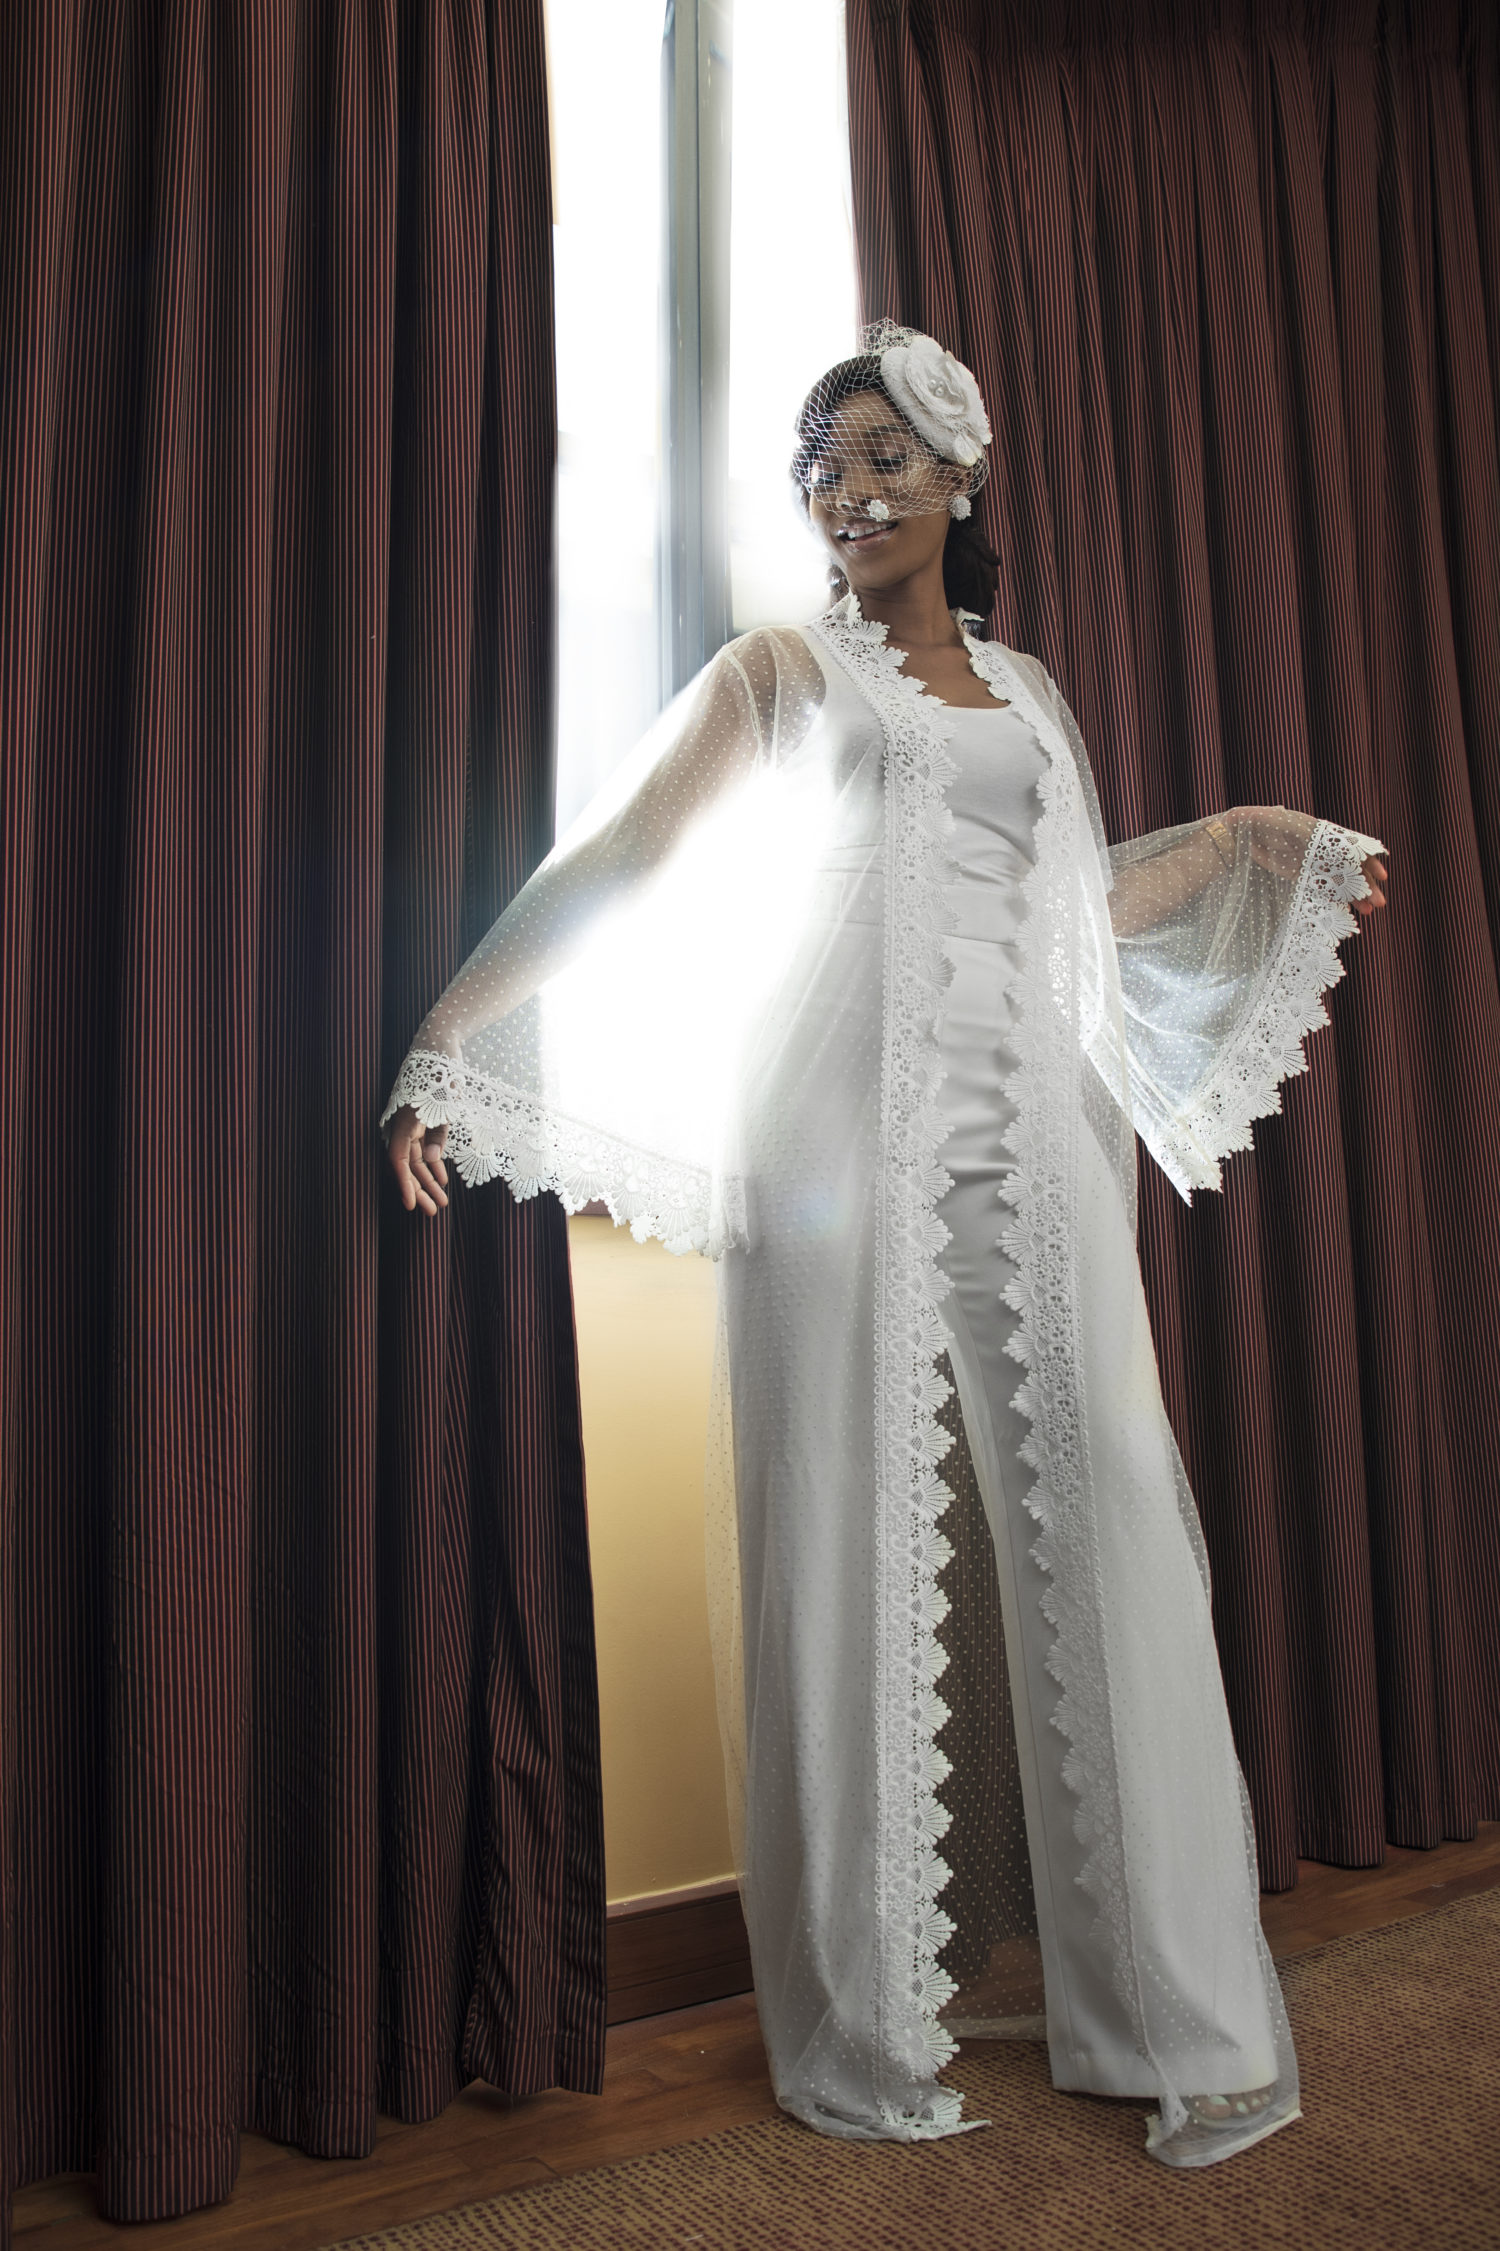 Abebi By Tan Makes a Strong Case for the Bridal Kimono Trend